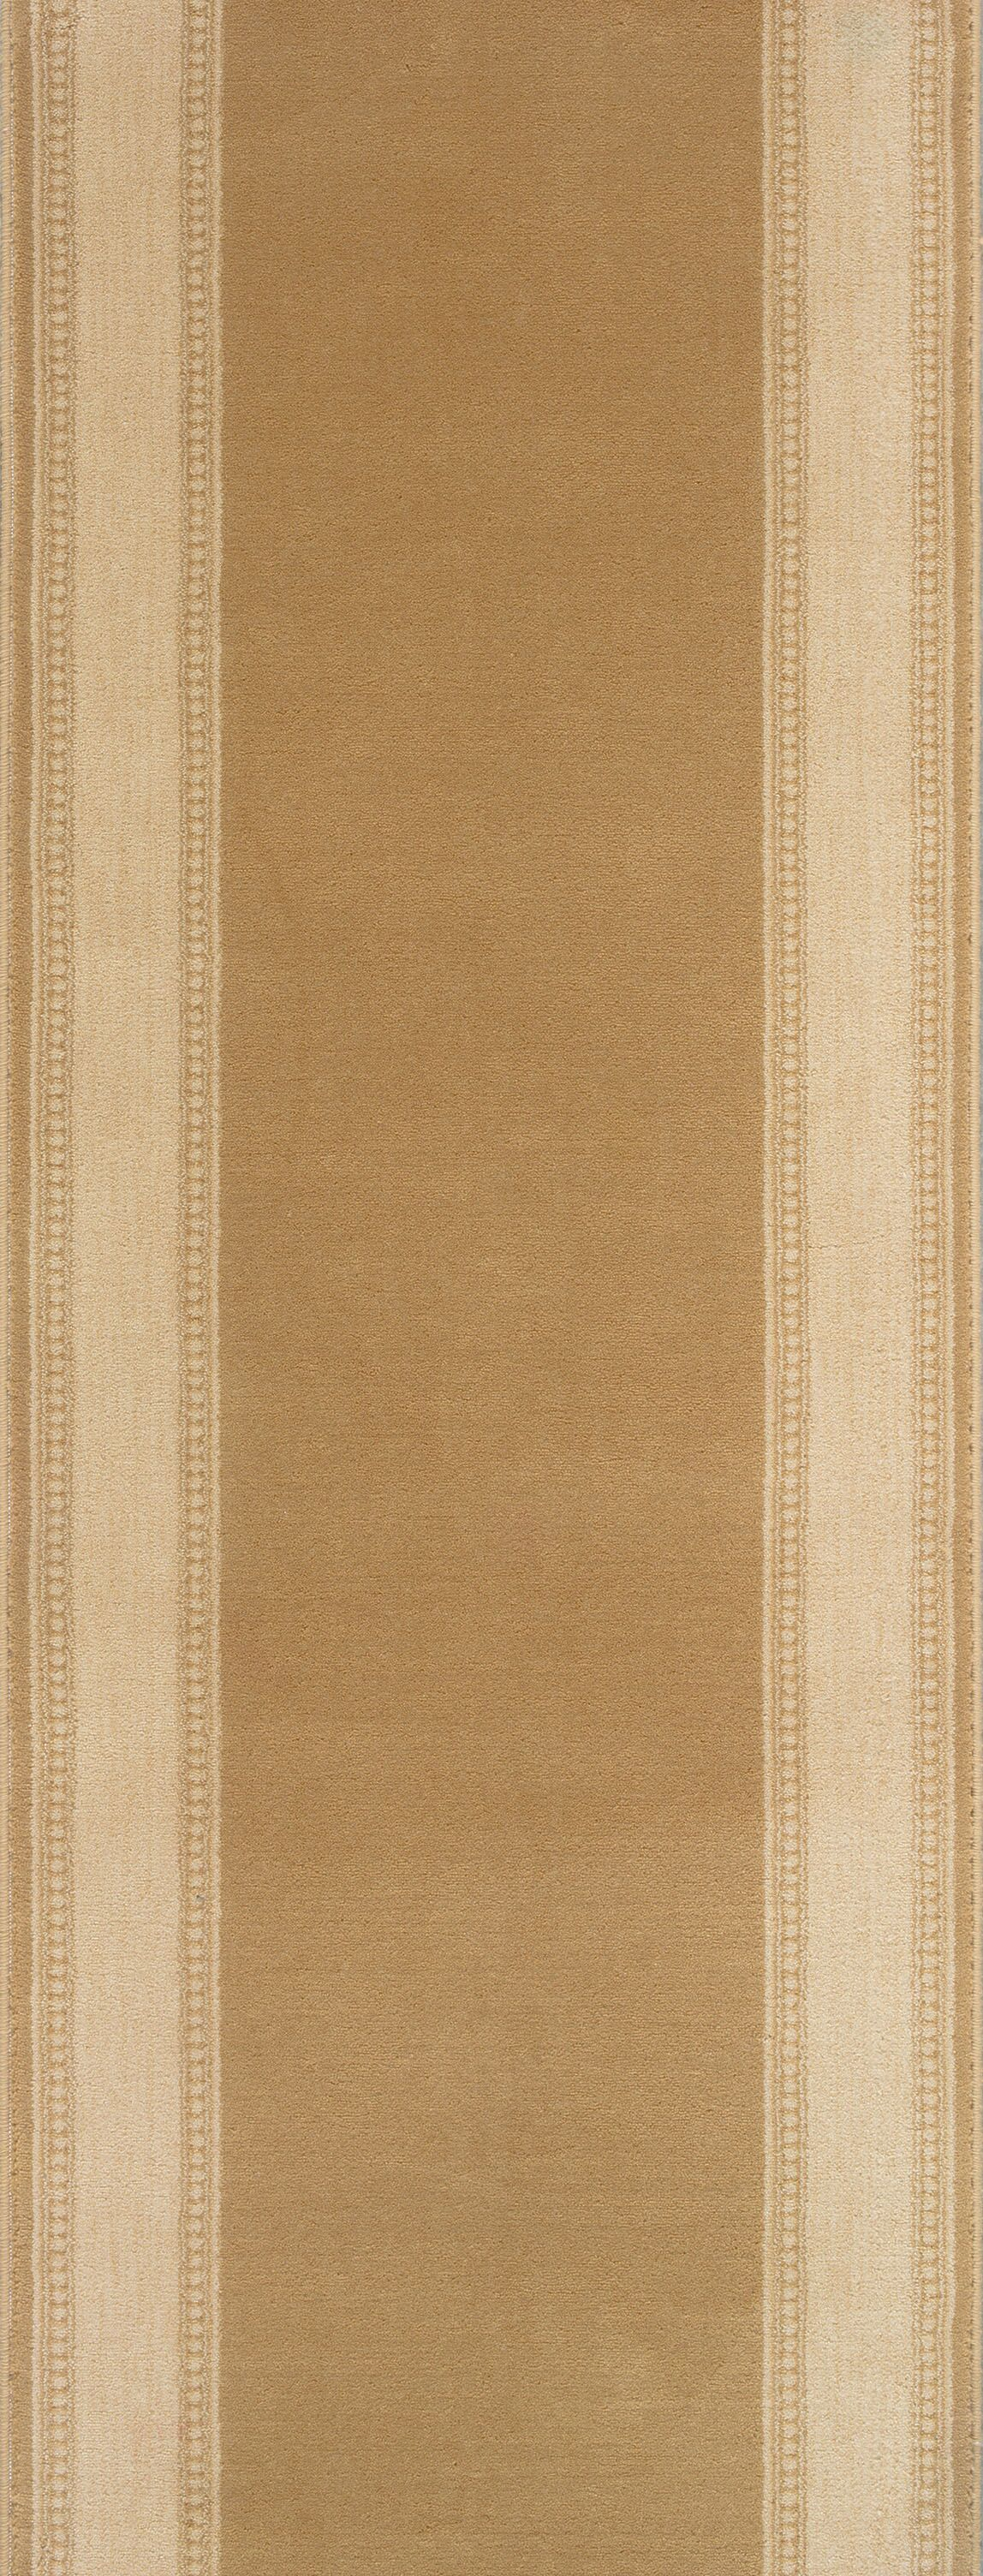 Sikanderpur Brown Area Rug Rug Size: Runner 2'7